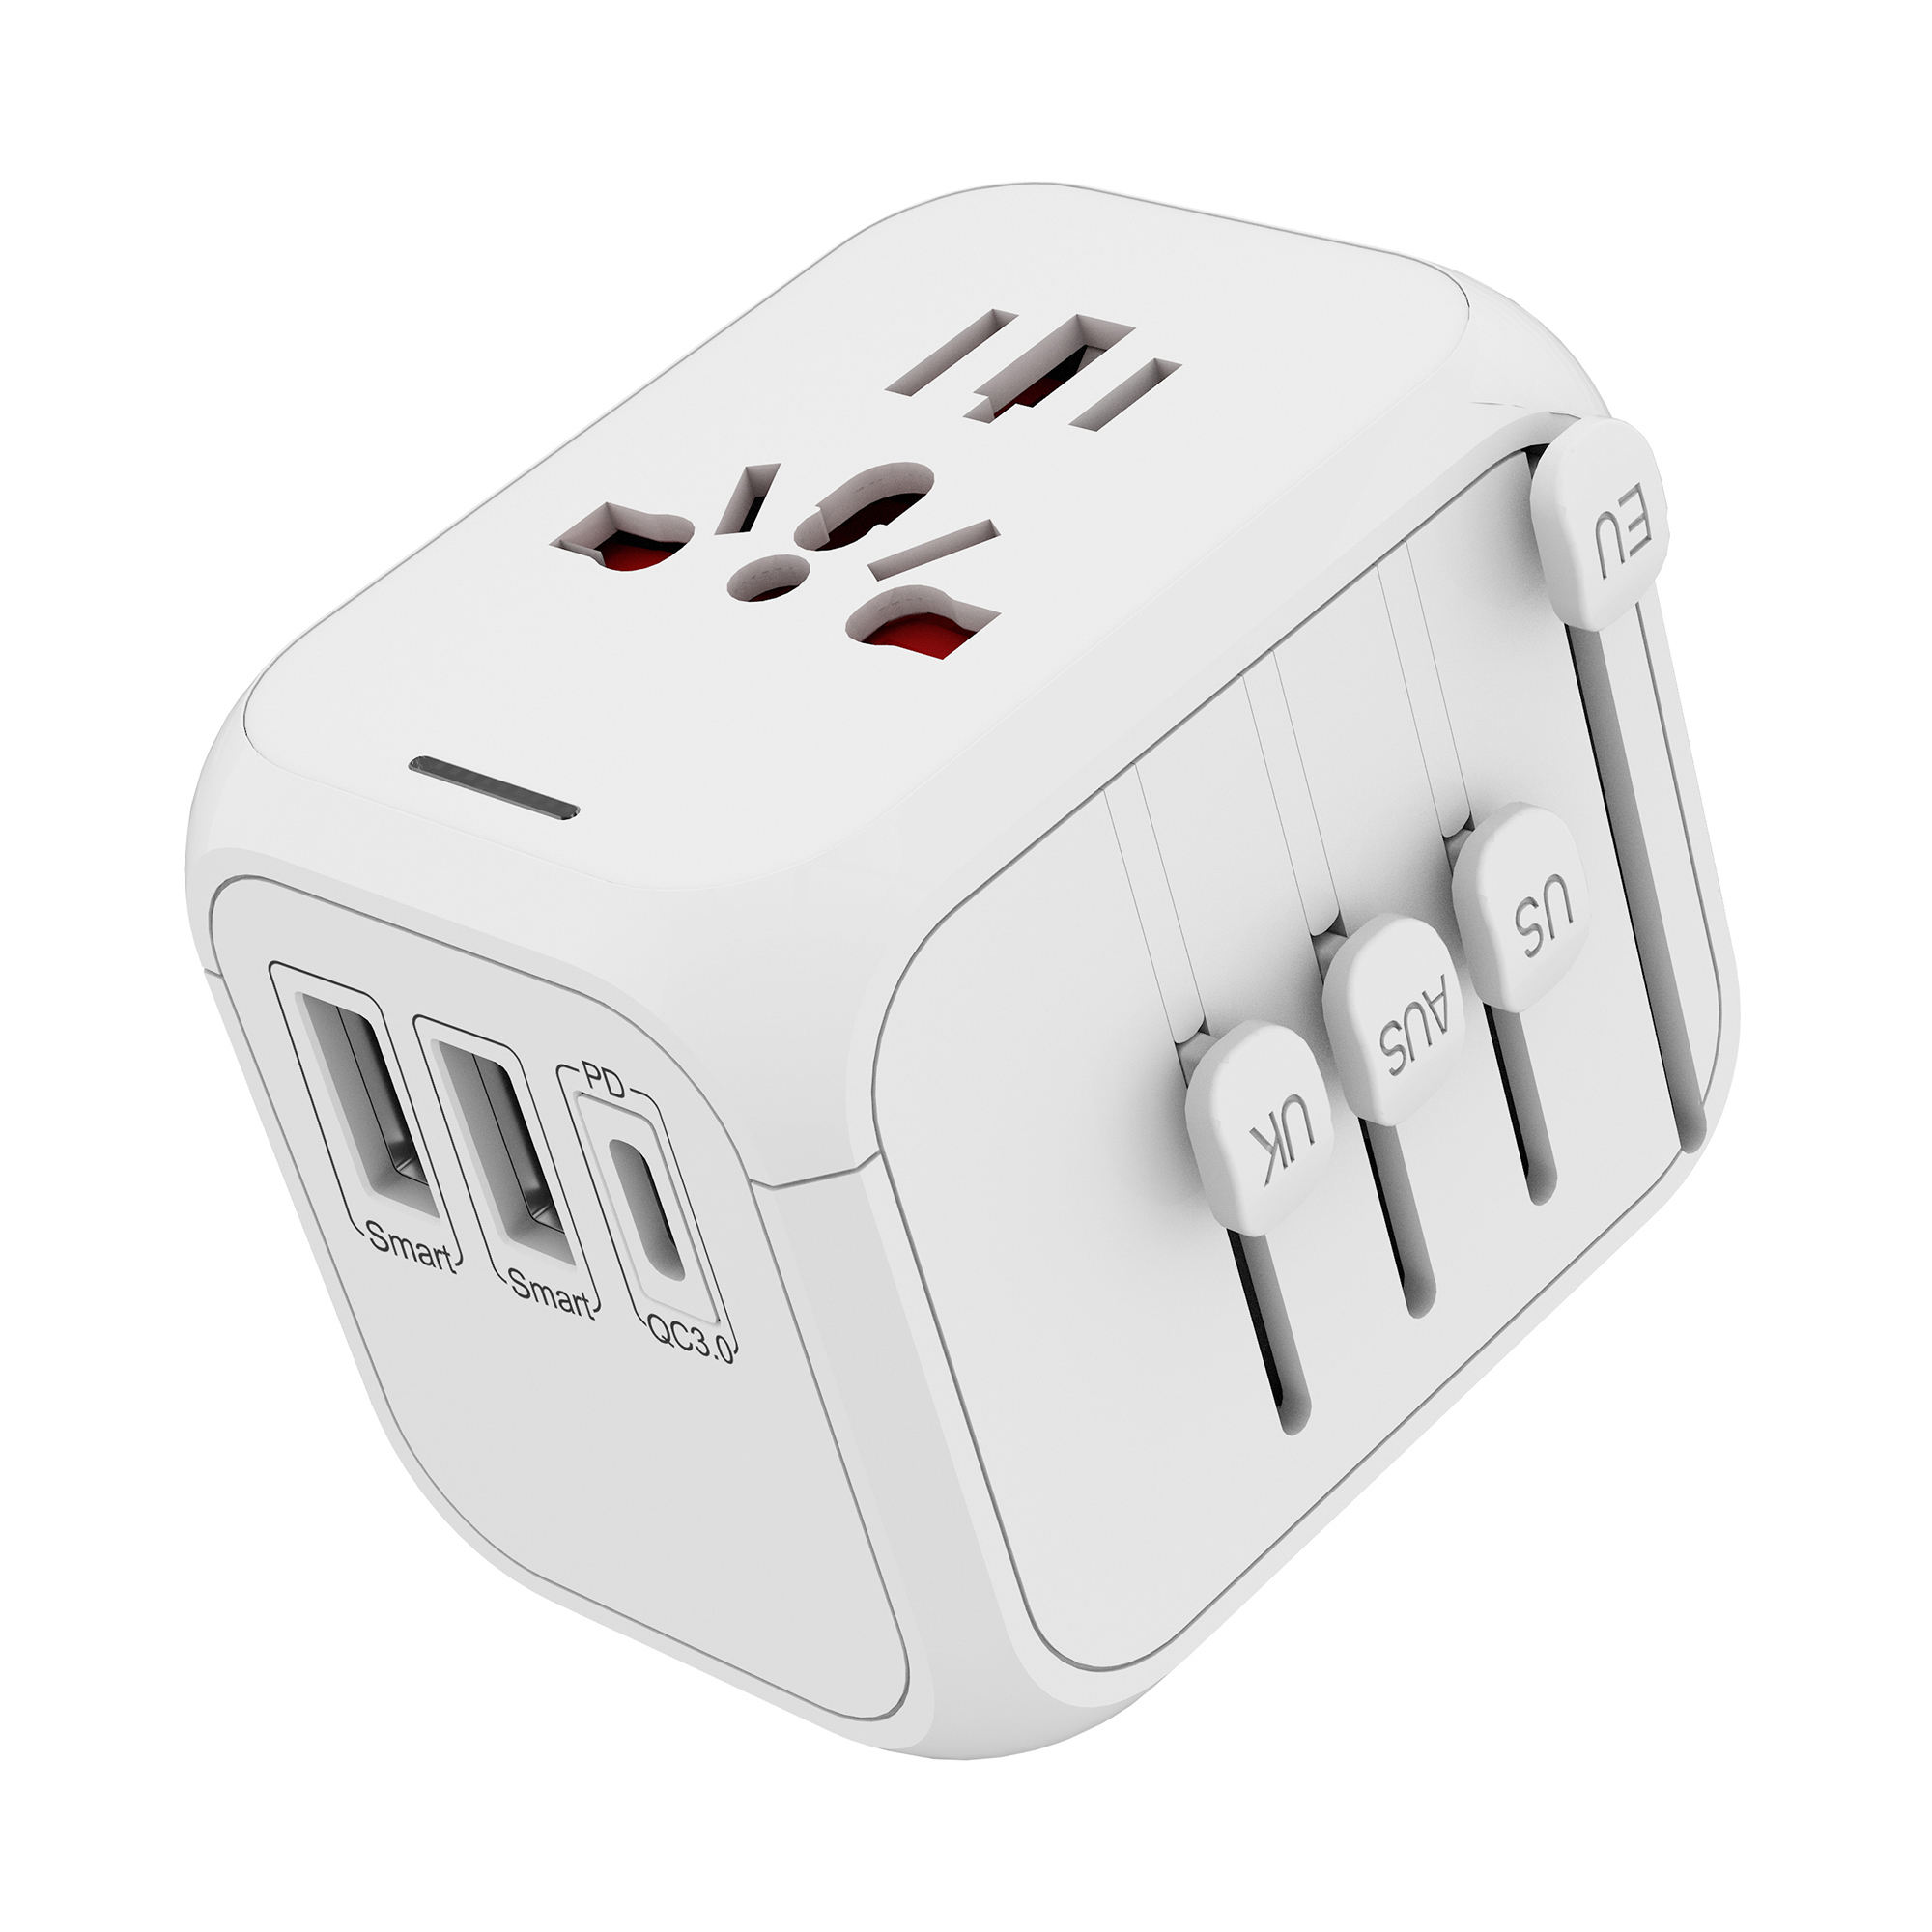 High quality international travel adaptor odm oem usb travel adapter PD for European market